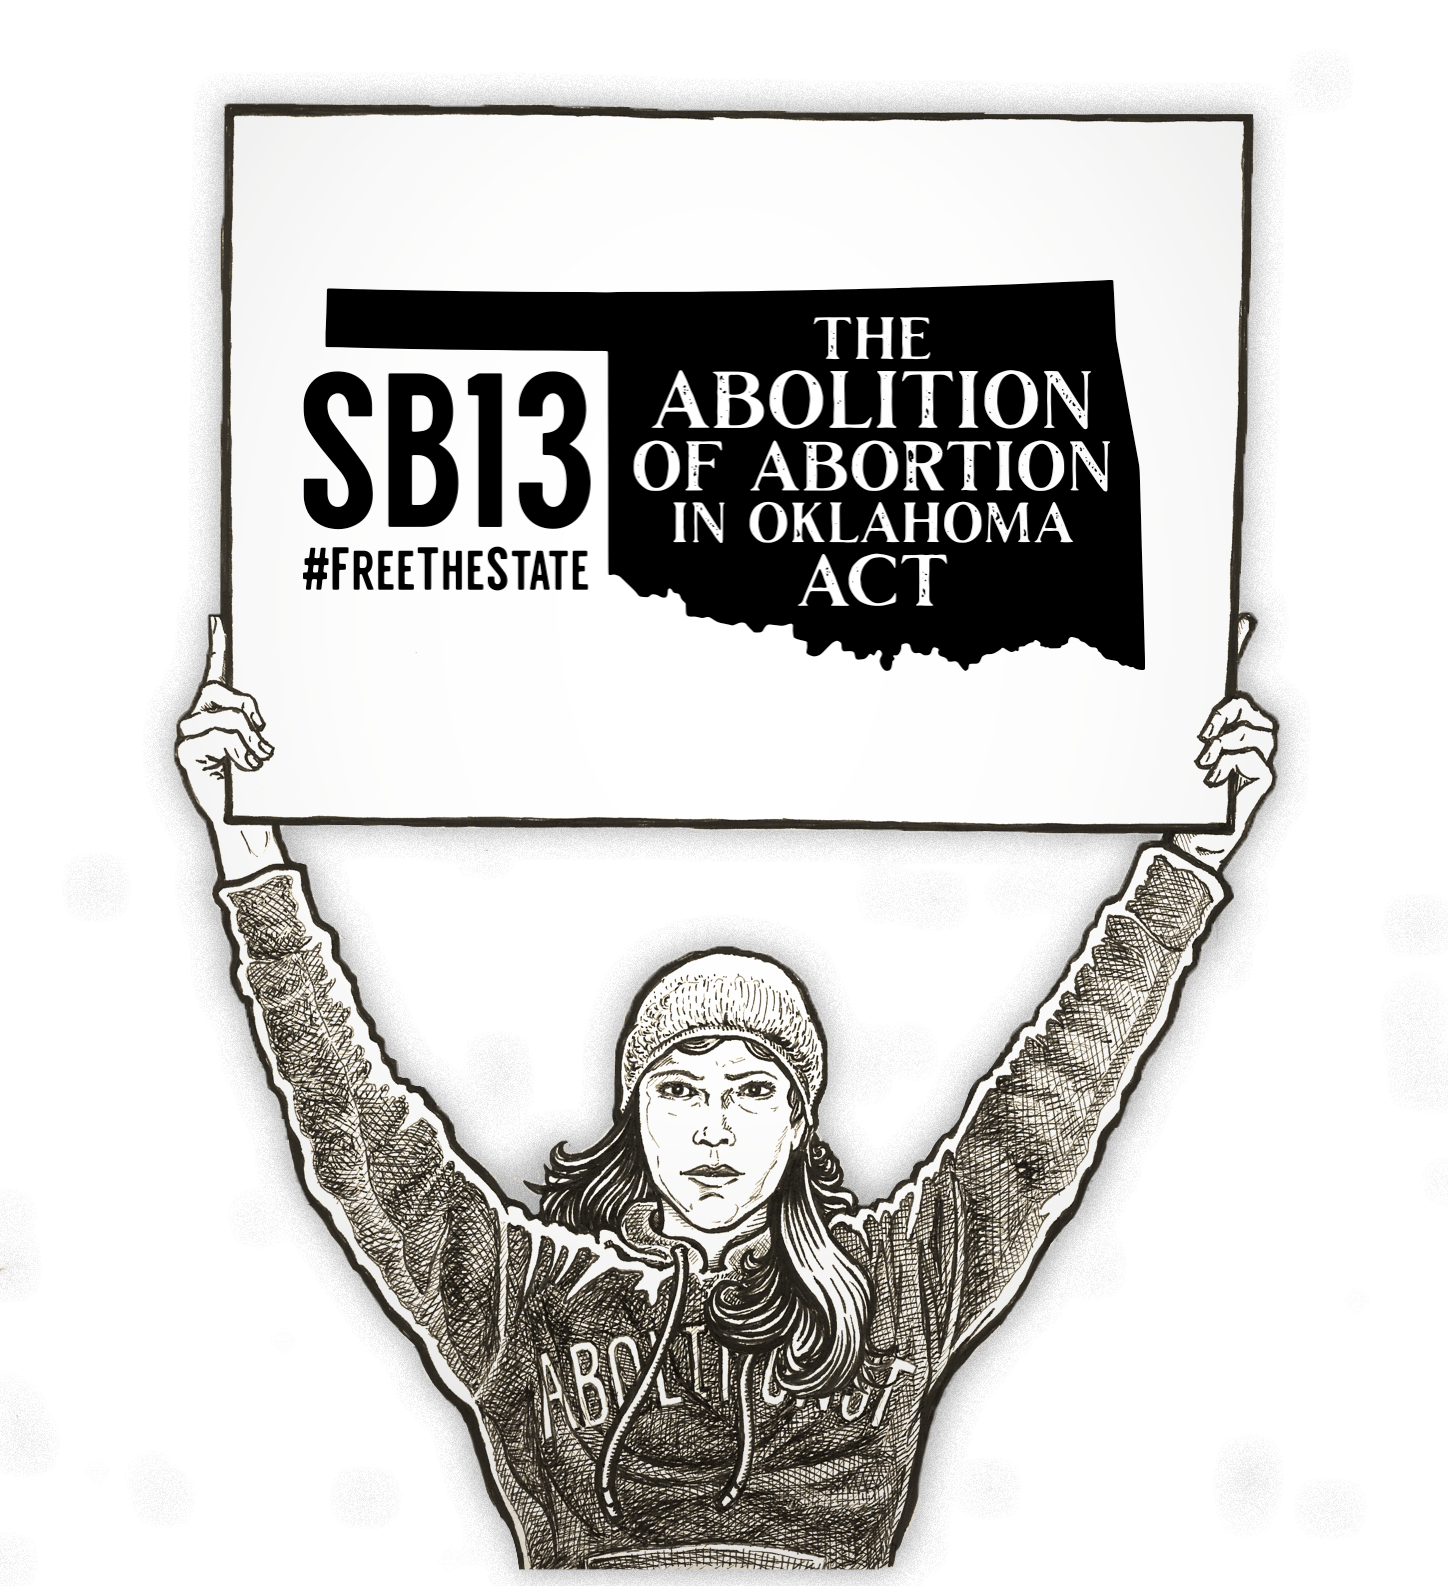 How You Can Help Support SB13